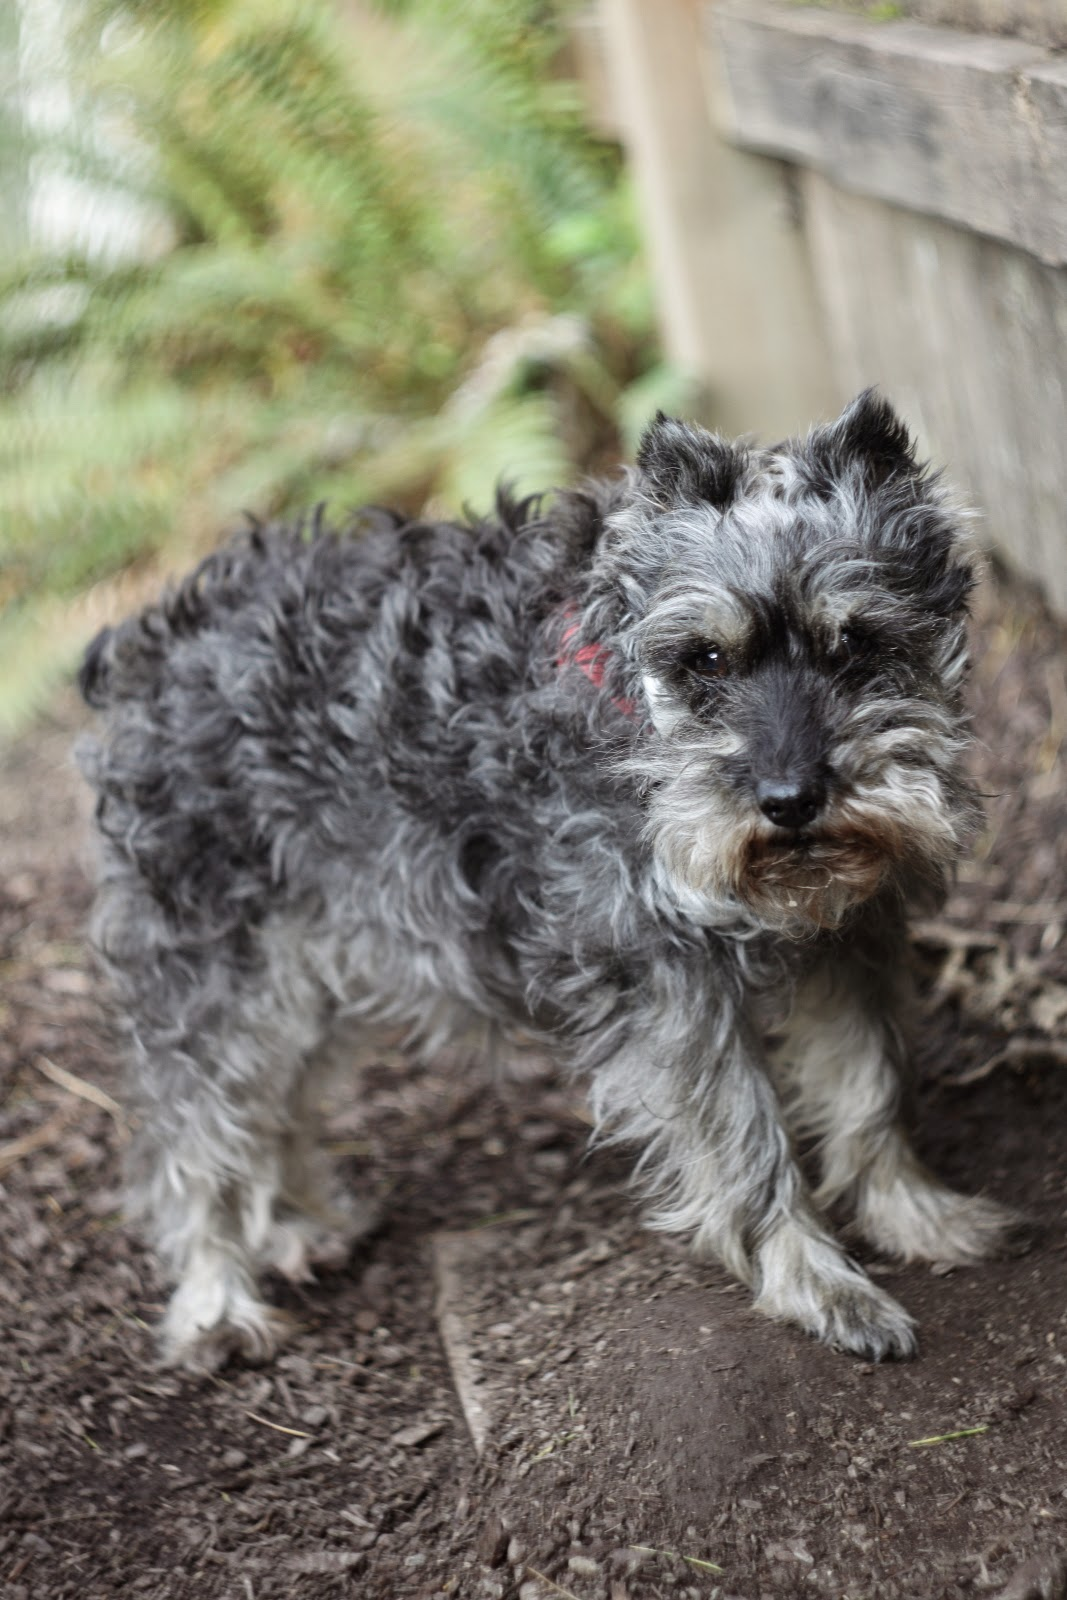 mini schnauzer hope, A Day in the Life, Photo-A-Day April 2015, Day 21, by Lisa Miller